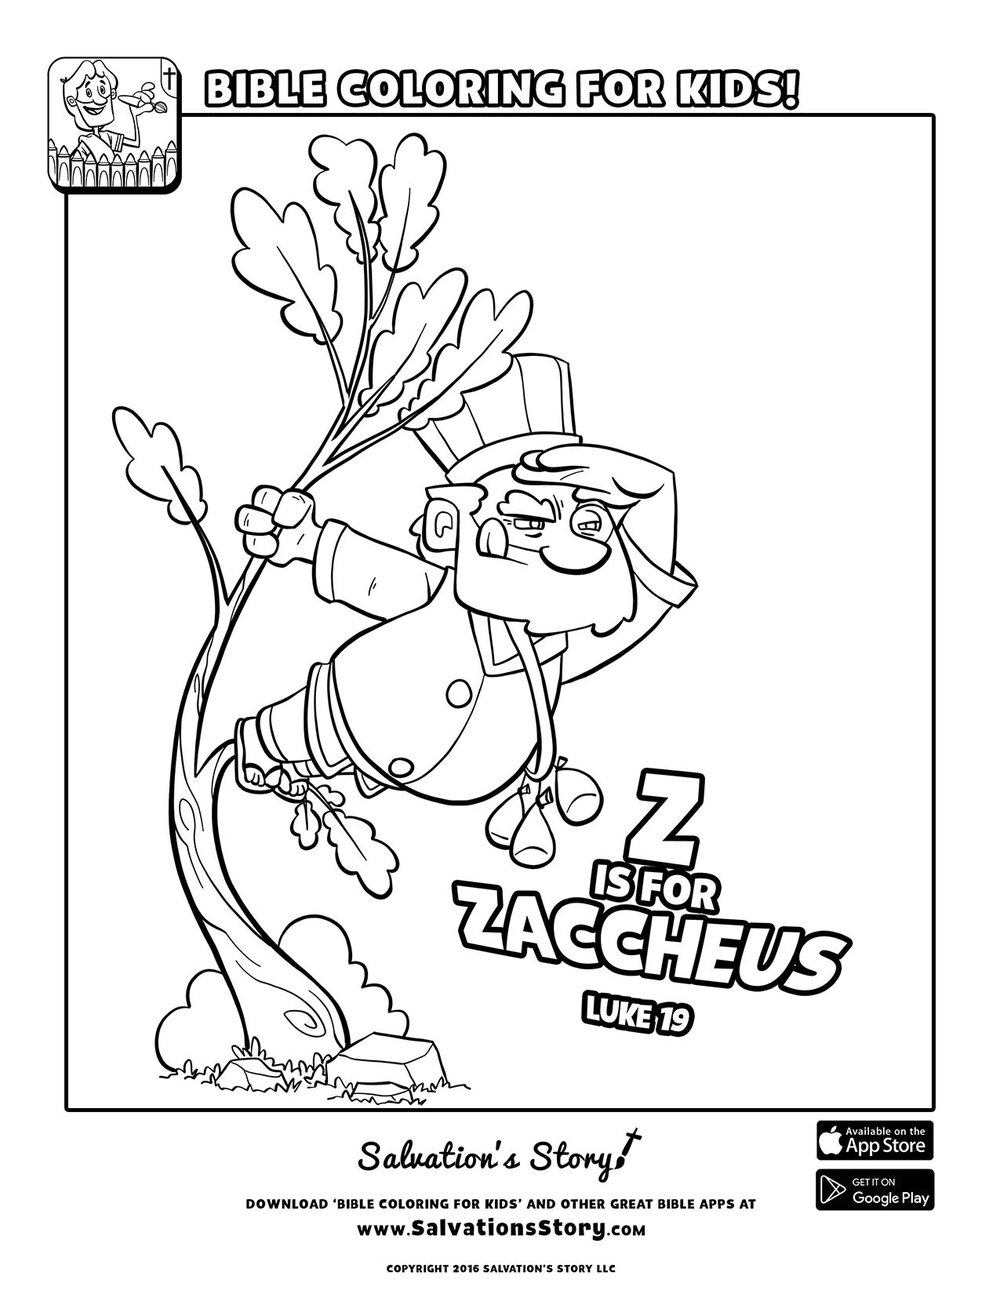 Z is for Zaccheus.jpg